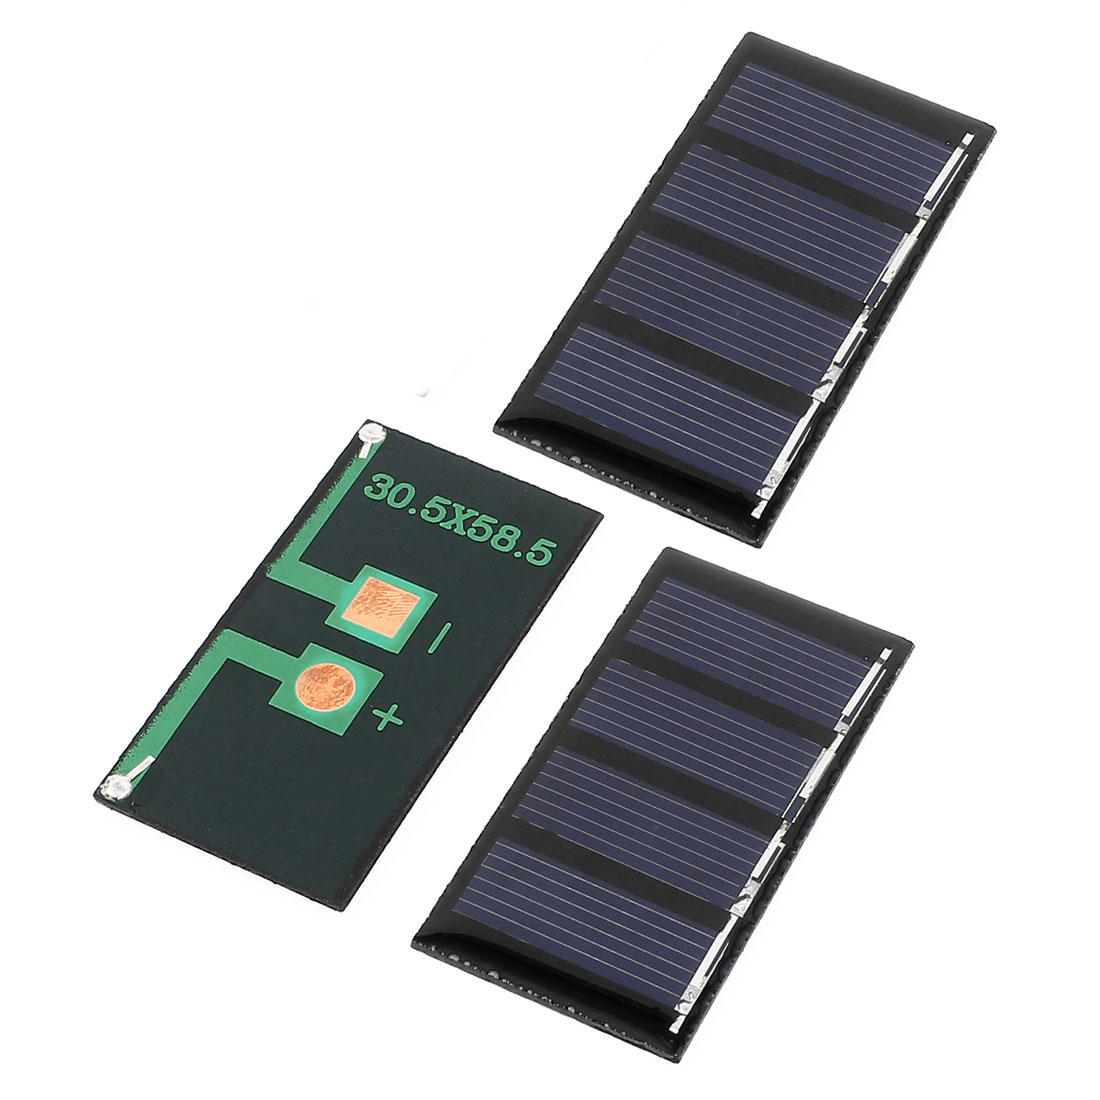 3 Pcs 2V 0.18W DIY Polycrystallinesilicon Solar Panel Power Cell Battery Charger 58.5mm x 30.5mm